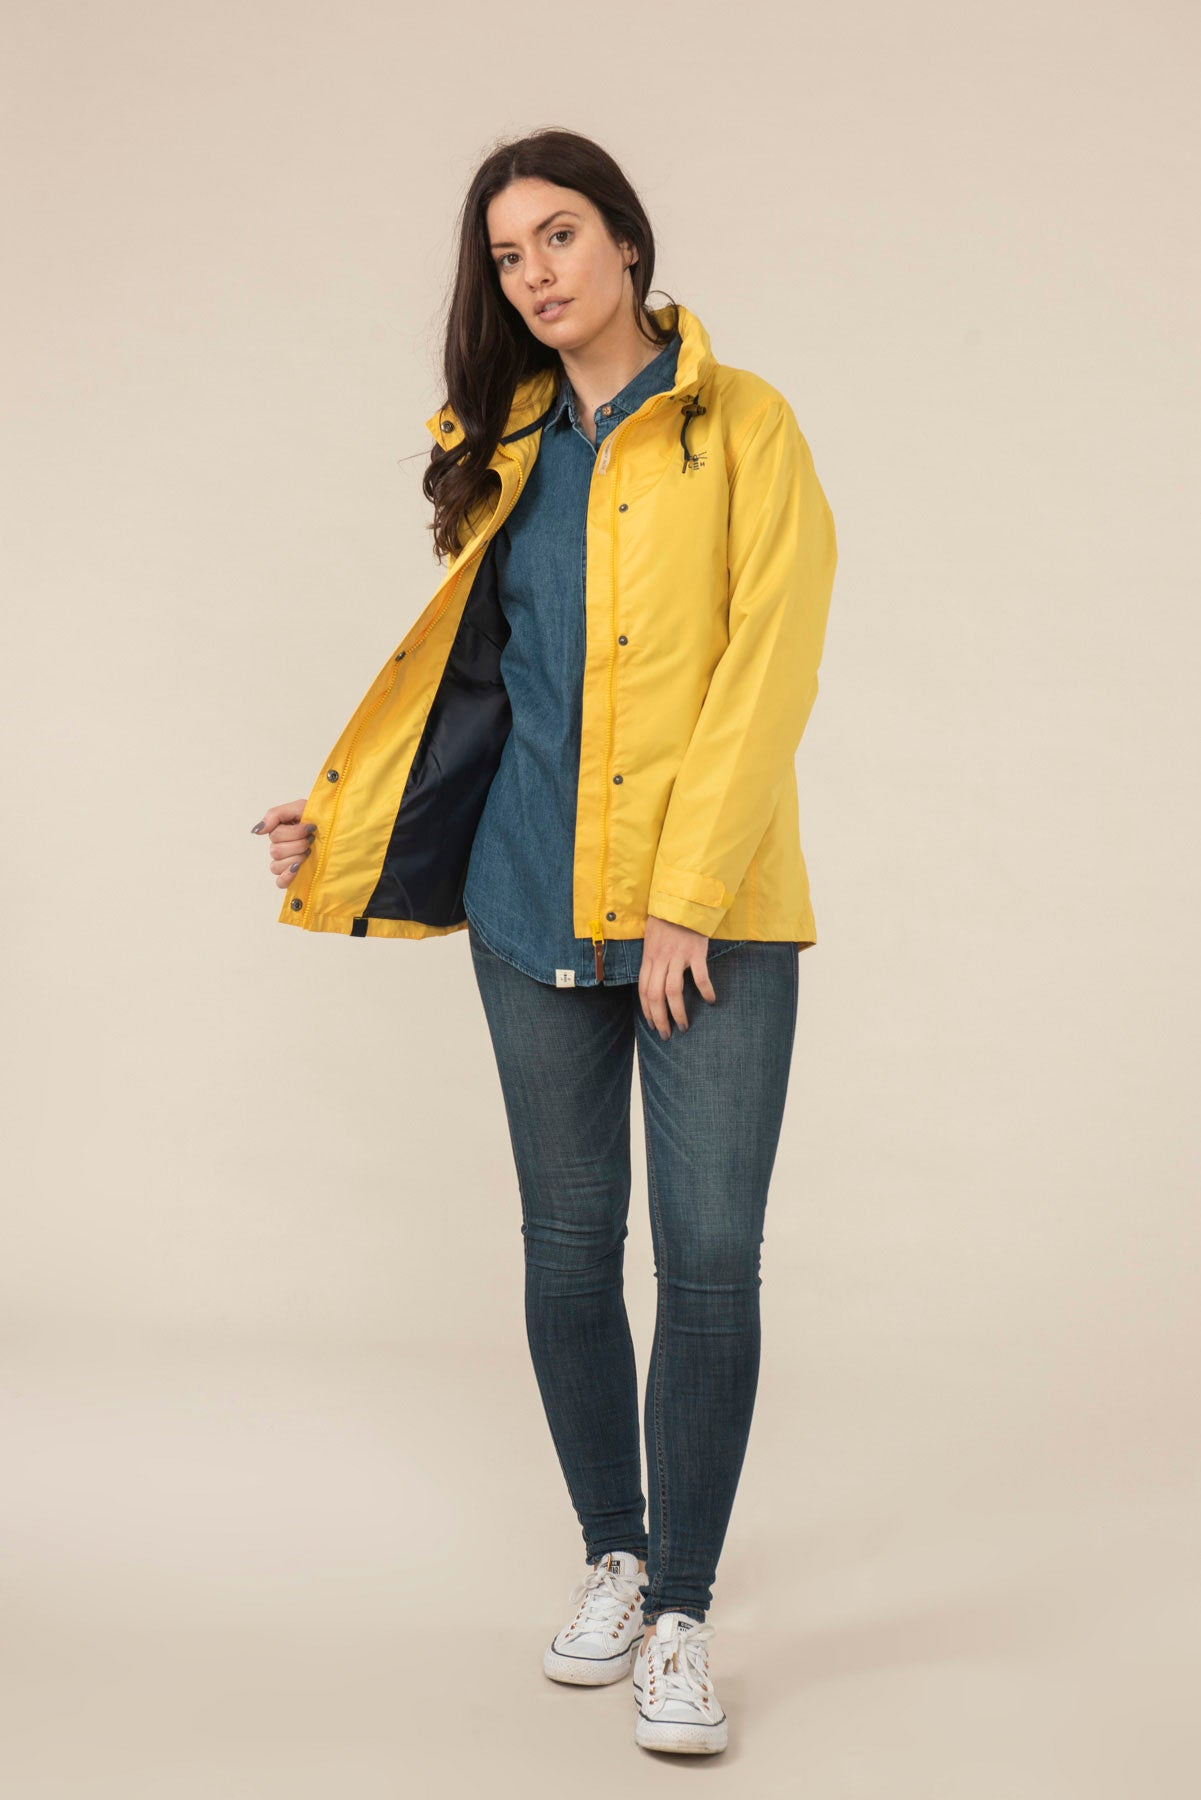 Women's Coats - Beachcomber - Yellow Raincoat